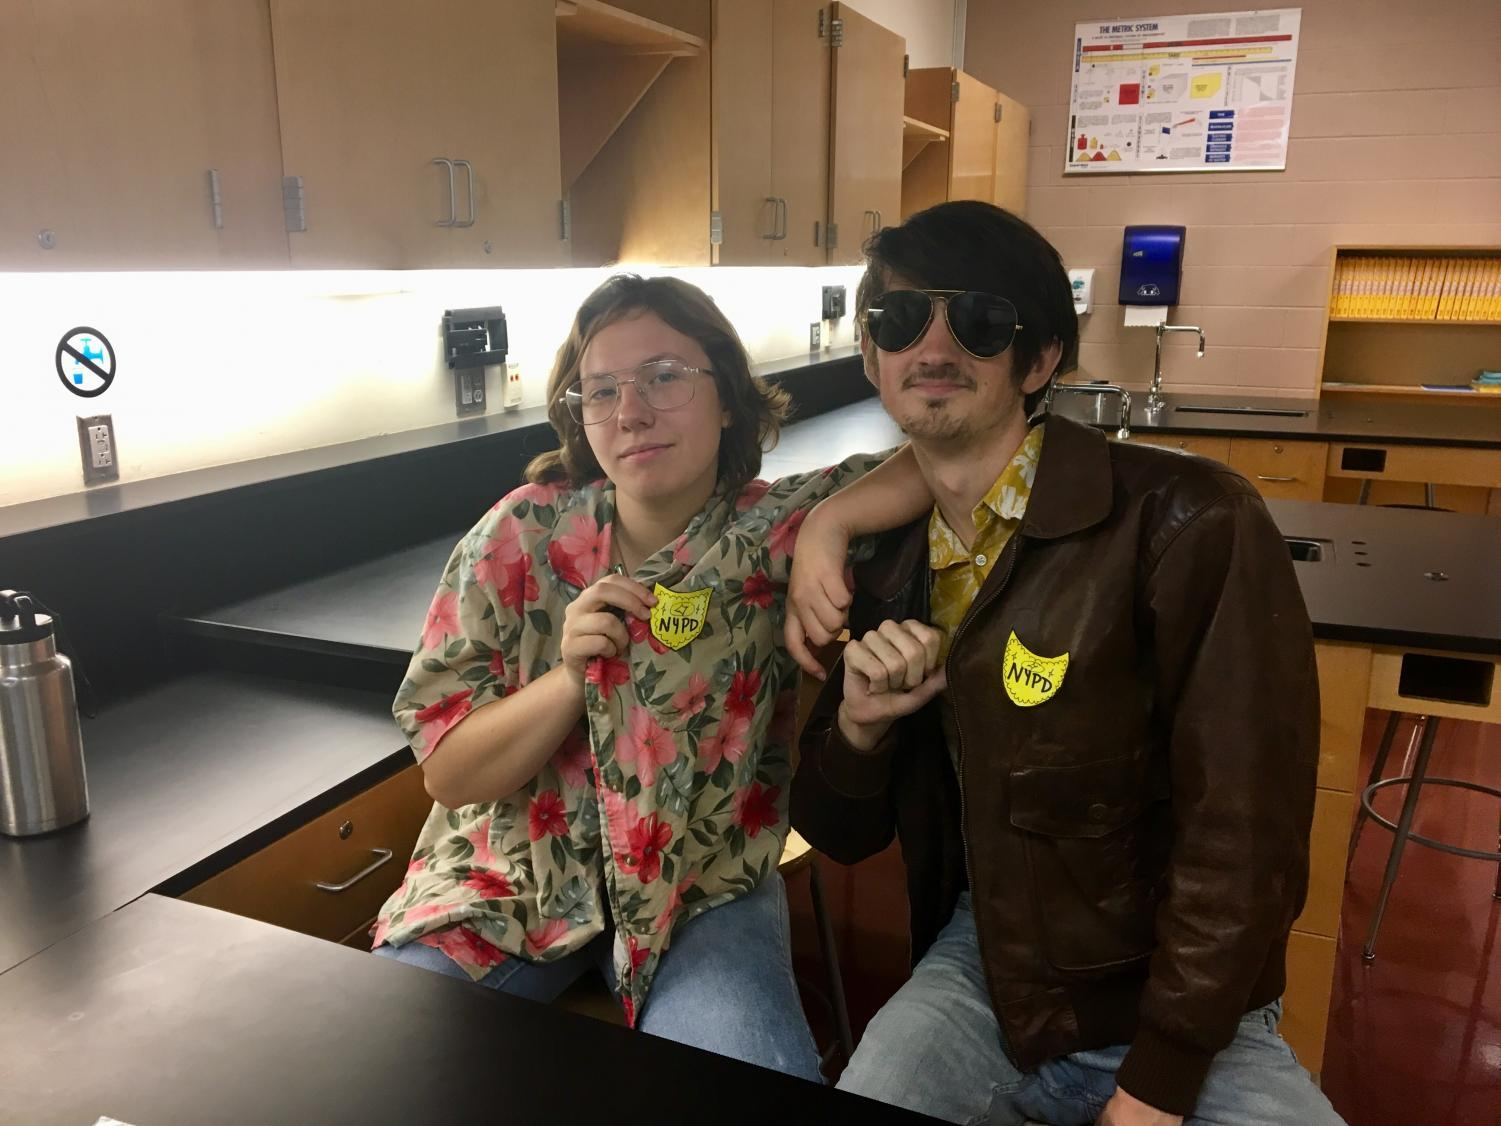 Mandy Schulien and Liam Trishman play NYPD detectives for a forensic science video project.